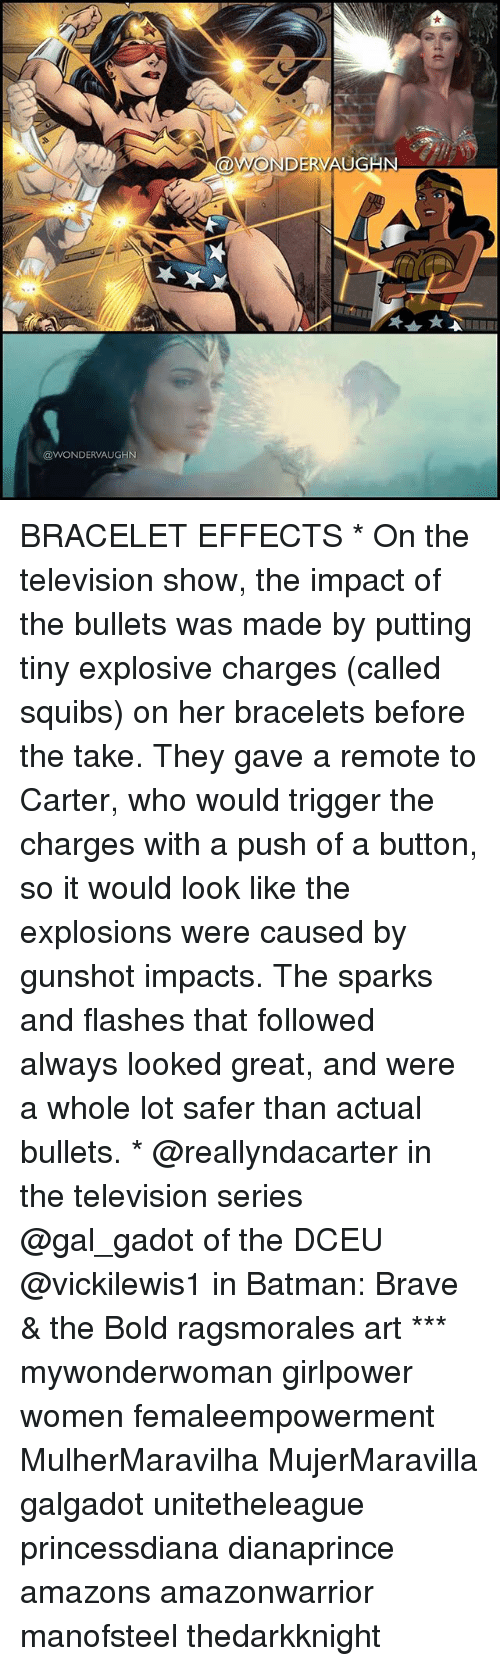 Batman, Memes, and Brave: DE  @WONDERVAUGHN BRACELET EFFECTS * On the television show, the impact of the bullets was made by putting tiny explosive charges (called squibs) on her bracelets before the take. They gave a remote to Carter, who would trigger the charges with a push of a button, so it would look like the explosions were caused by gunshot impacts. The sparks and flashes that followed always looked great, and were a whole lot safer than actual bullets. * @reallyndacarter in the television series @gal_gadot of the DCEU @vickilewis1 in Batman: Brave & the Bold ragsmorales art *** mywonderwoman girlpower women femaleempowerment MulherMaravilha MujerMaravilla galgadot unitetheleague princessdiana dianaprince amazons amazonwarrior manofsteel thedarkknight